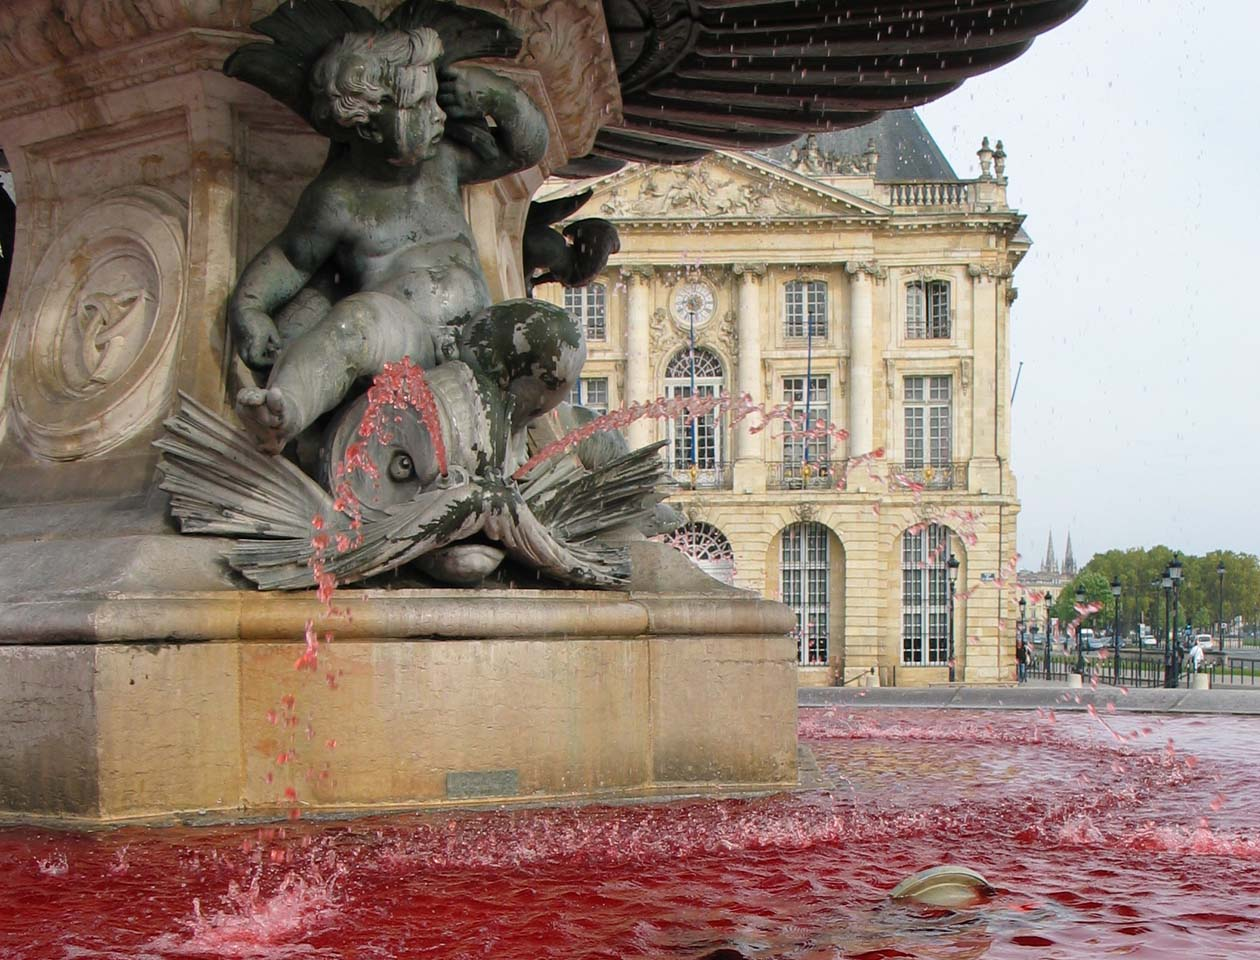 2012-10-08-Fontaine-Bourse-Pink-October-2